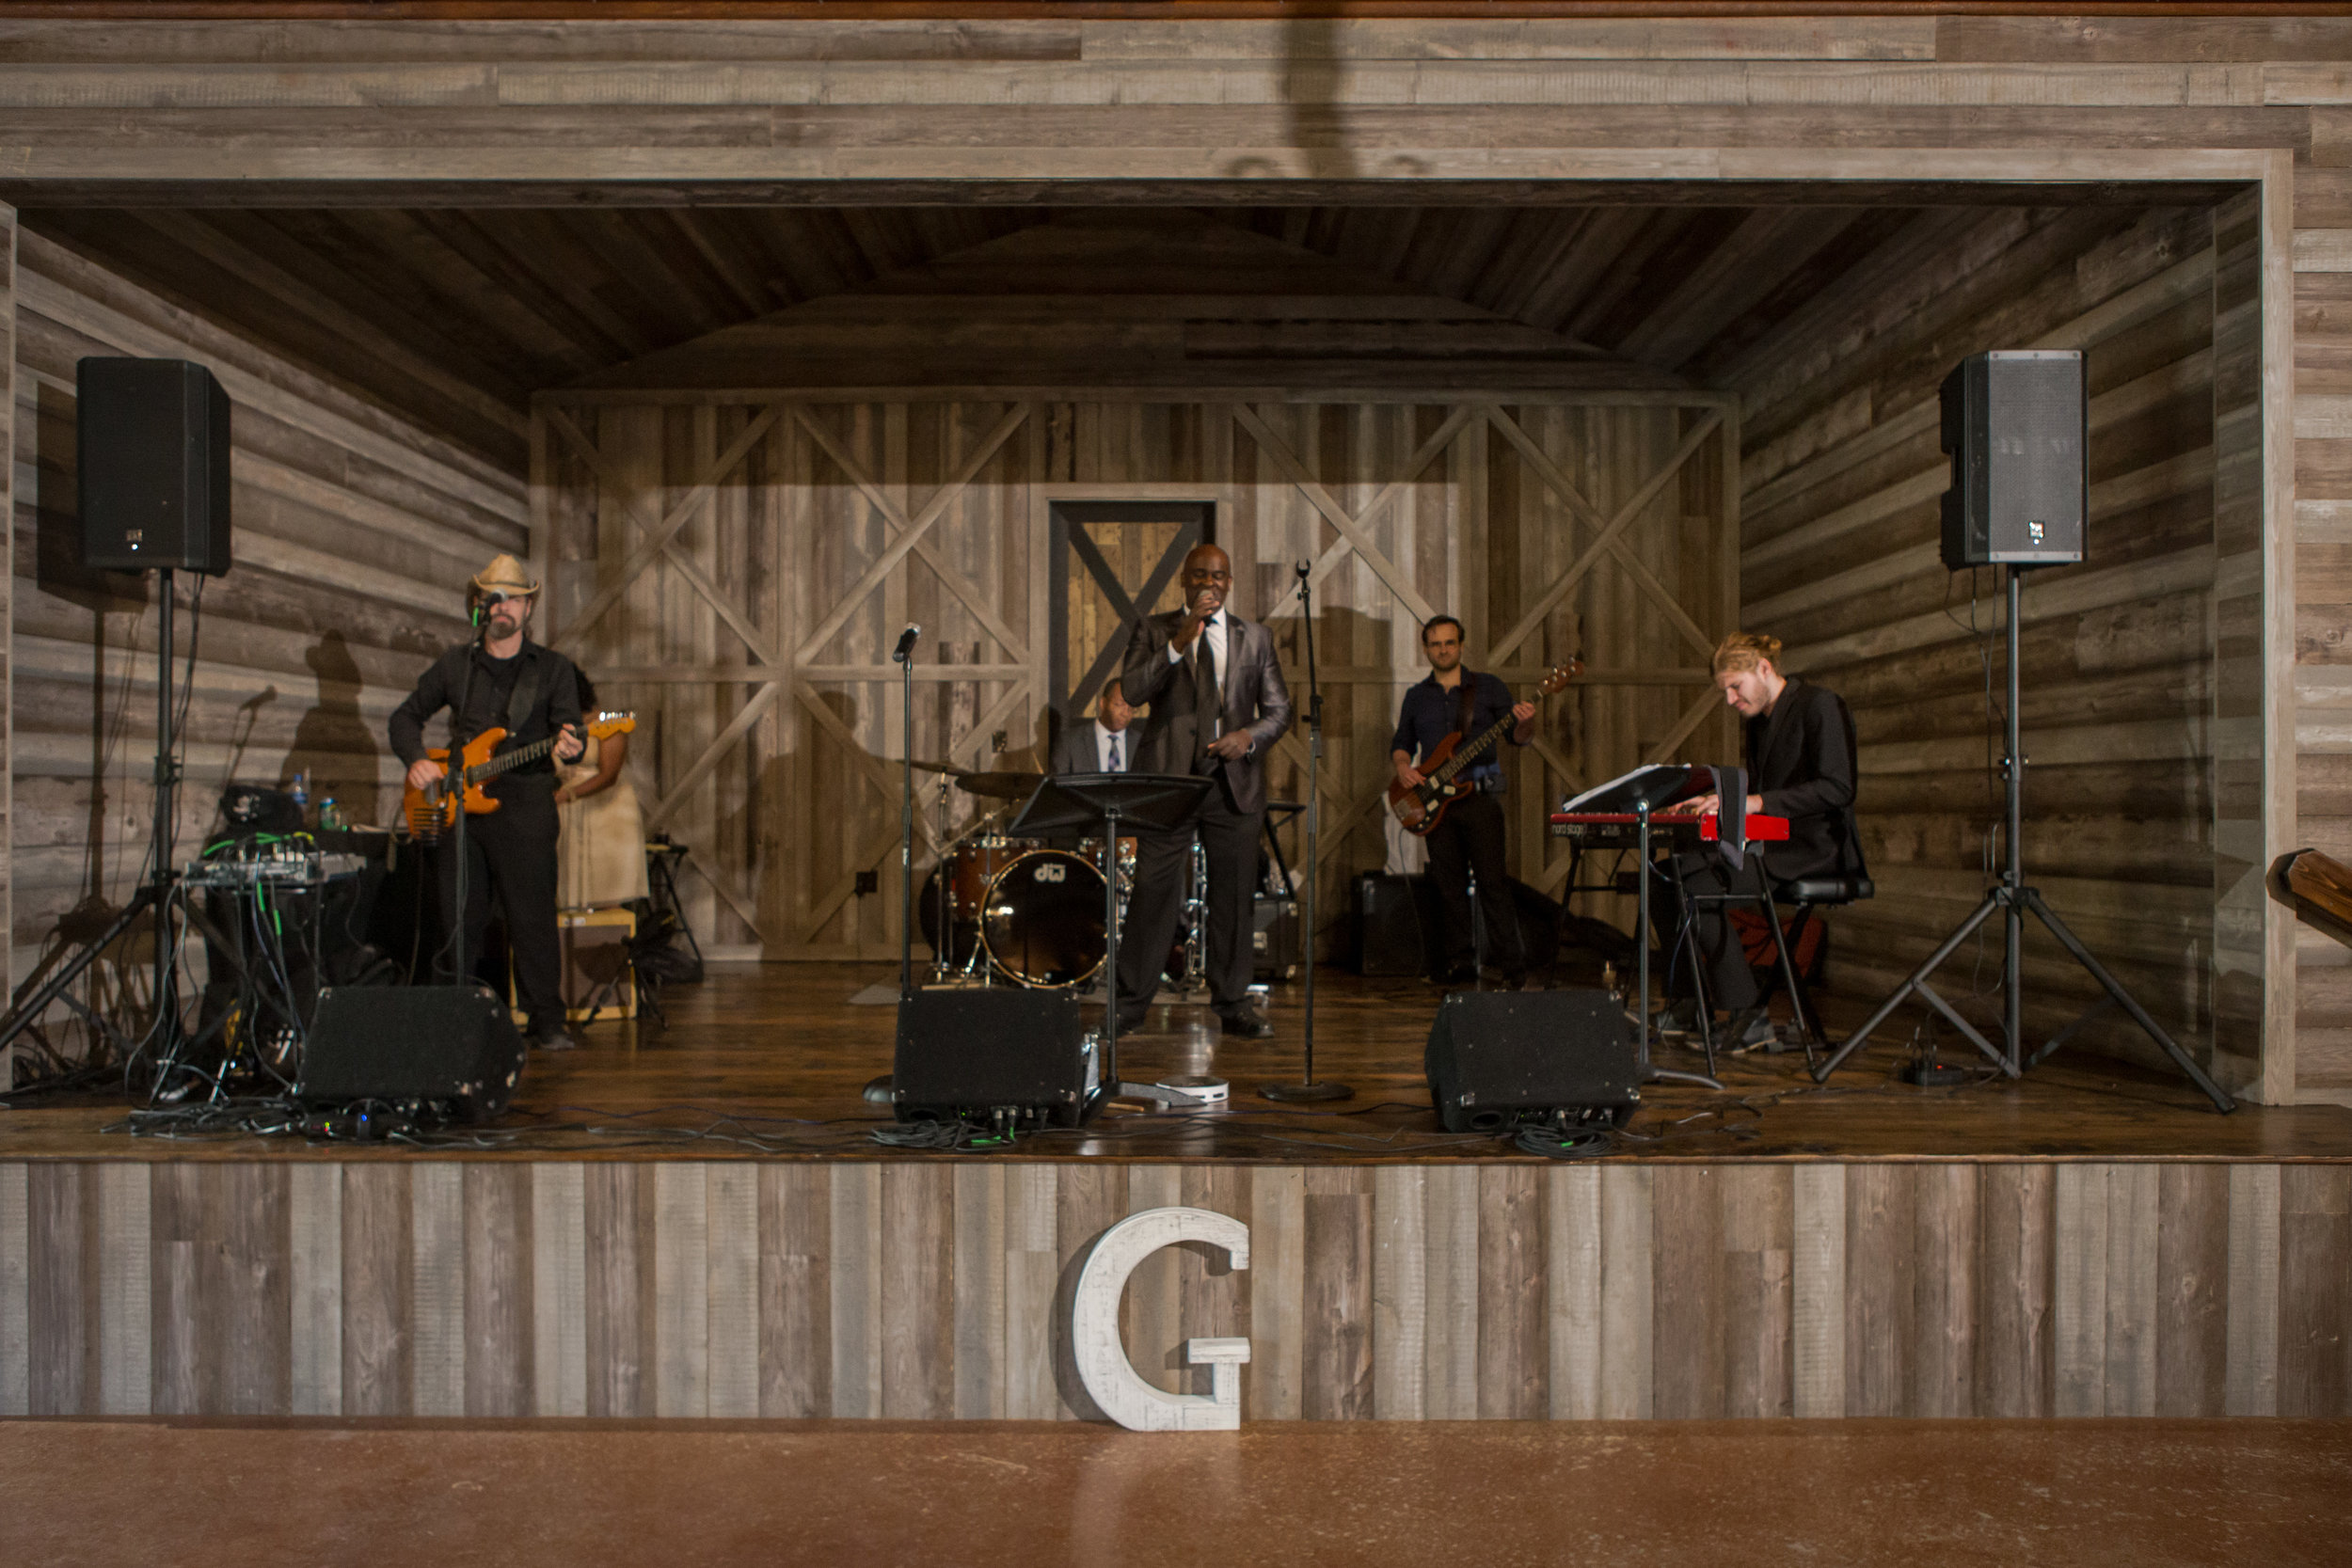 A wedding band performing on a wooden stage in a barn.